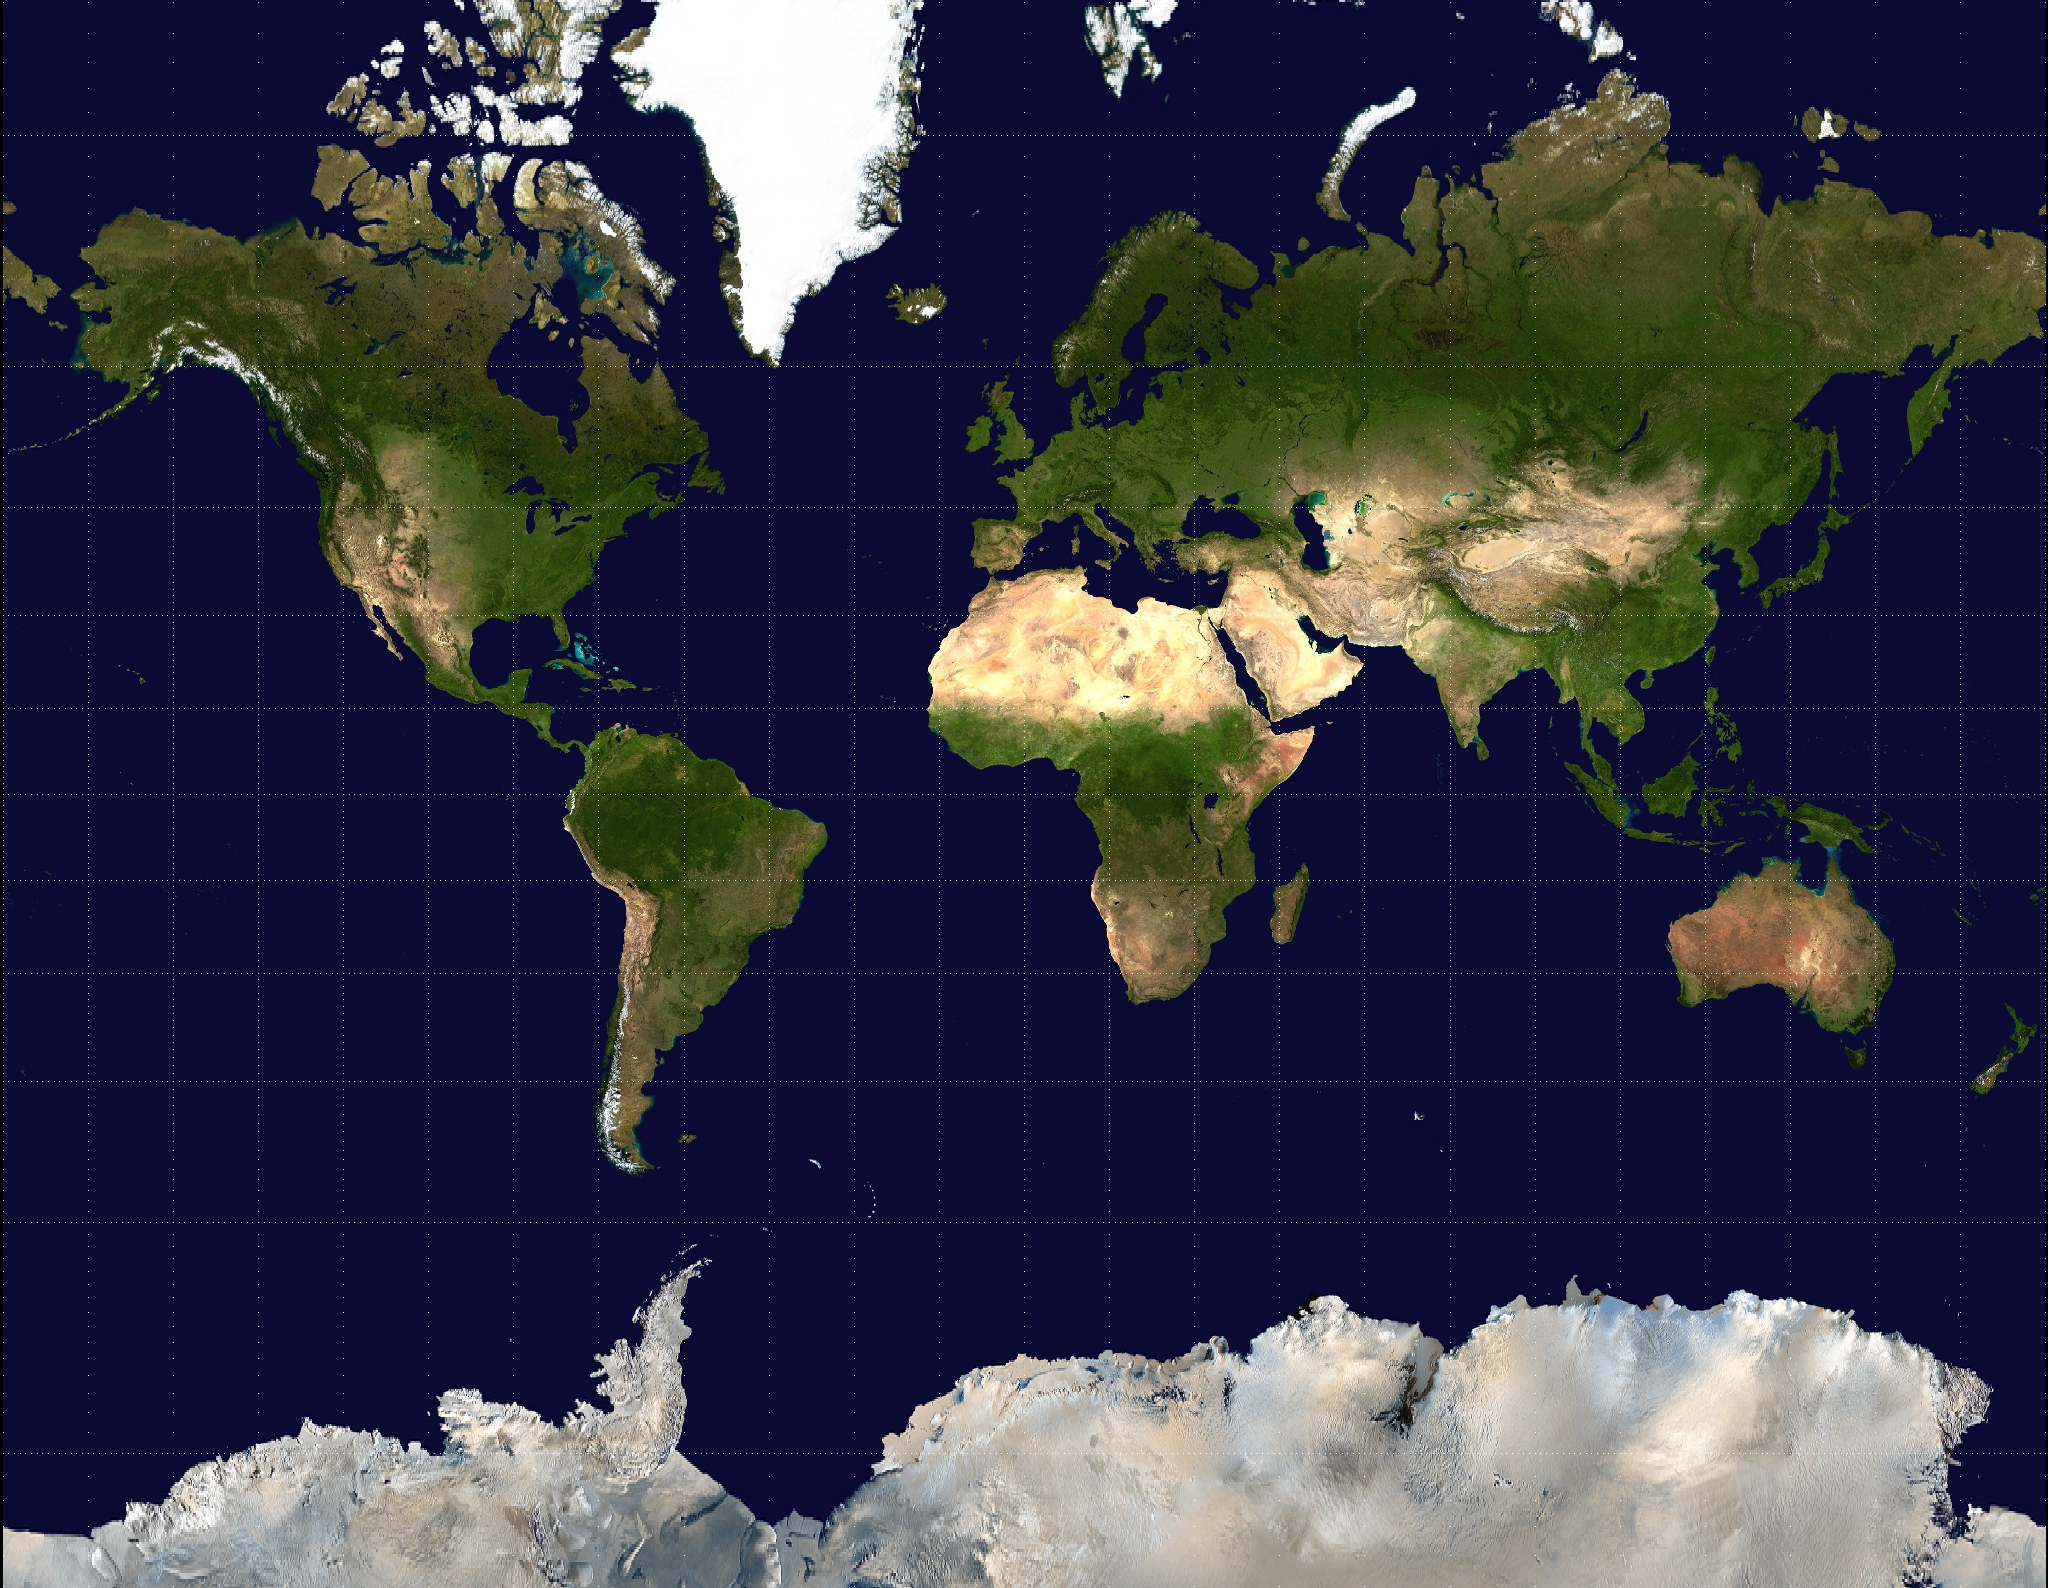 File:Mercator Projection